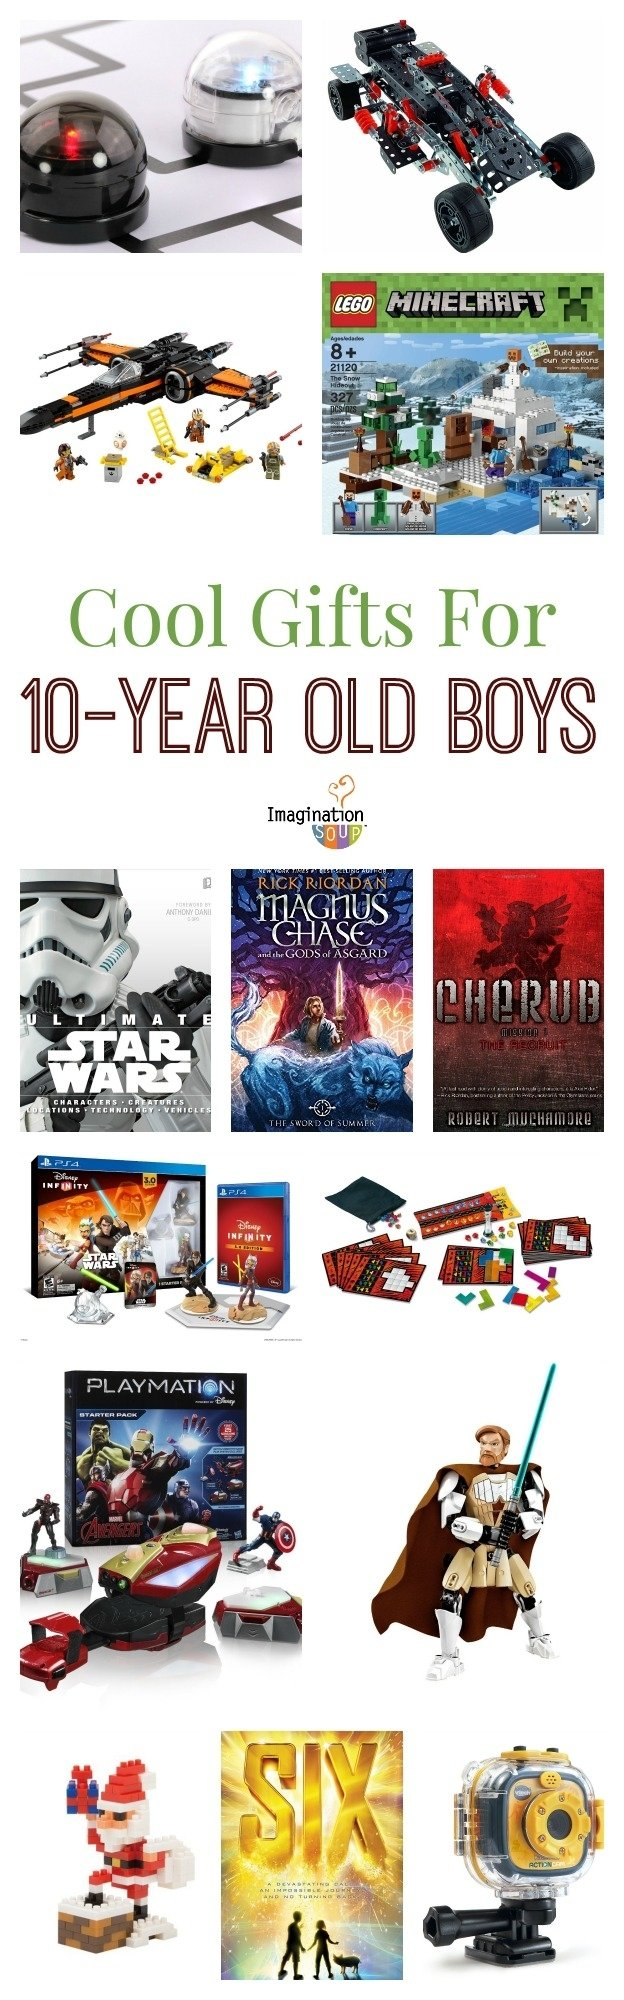 10 Unique Gift Ideas For 10 Year Old Boy gifts for 10 year old boys imagination soup 3 2020